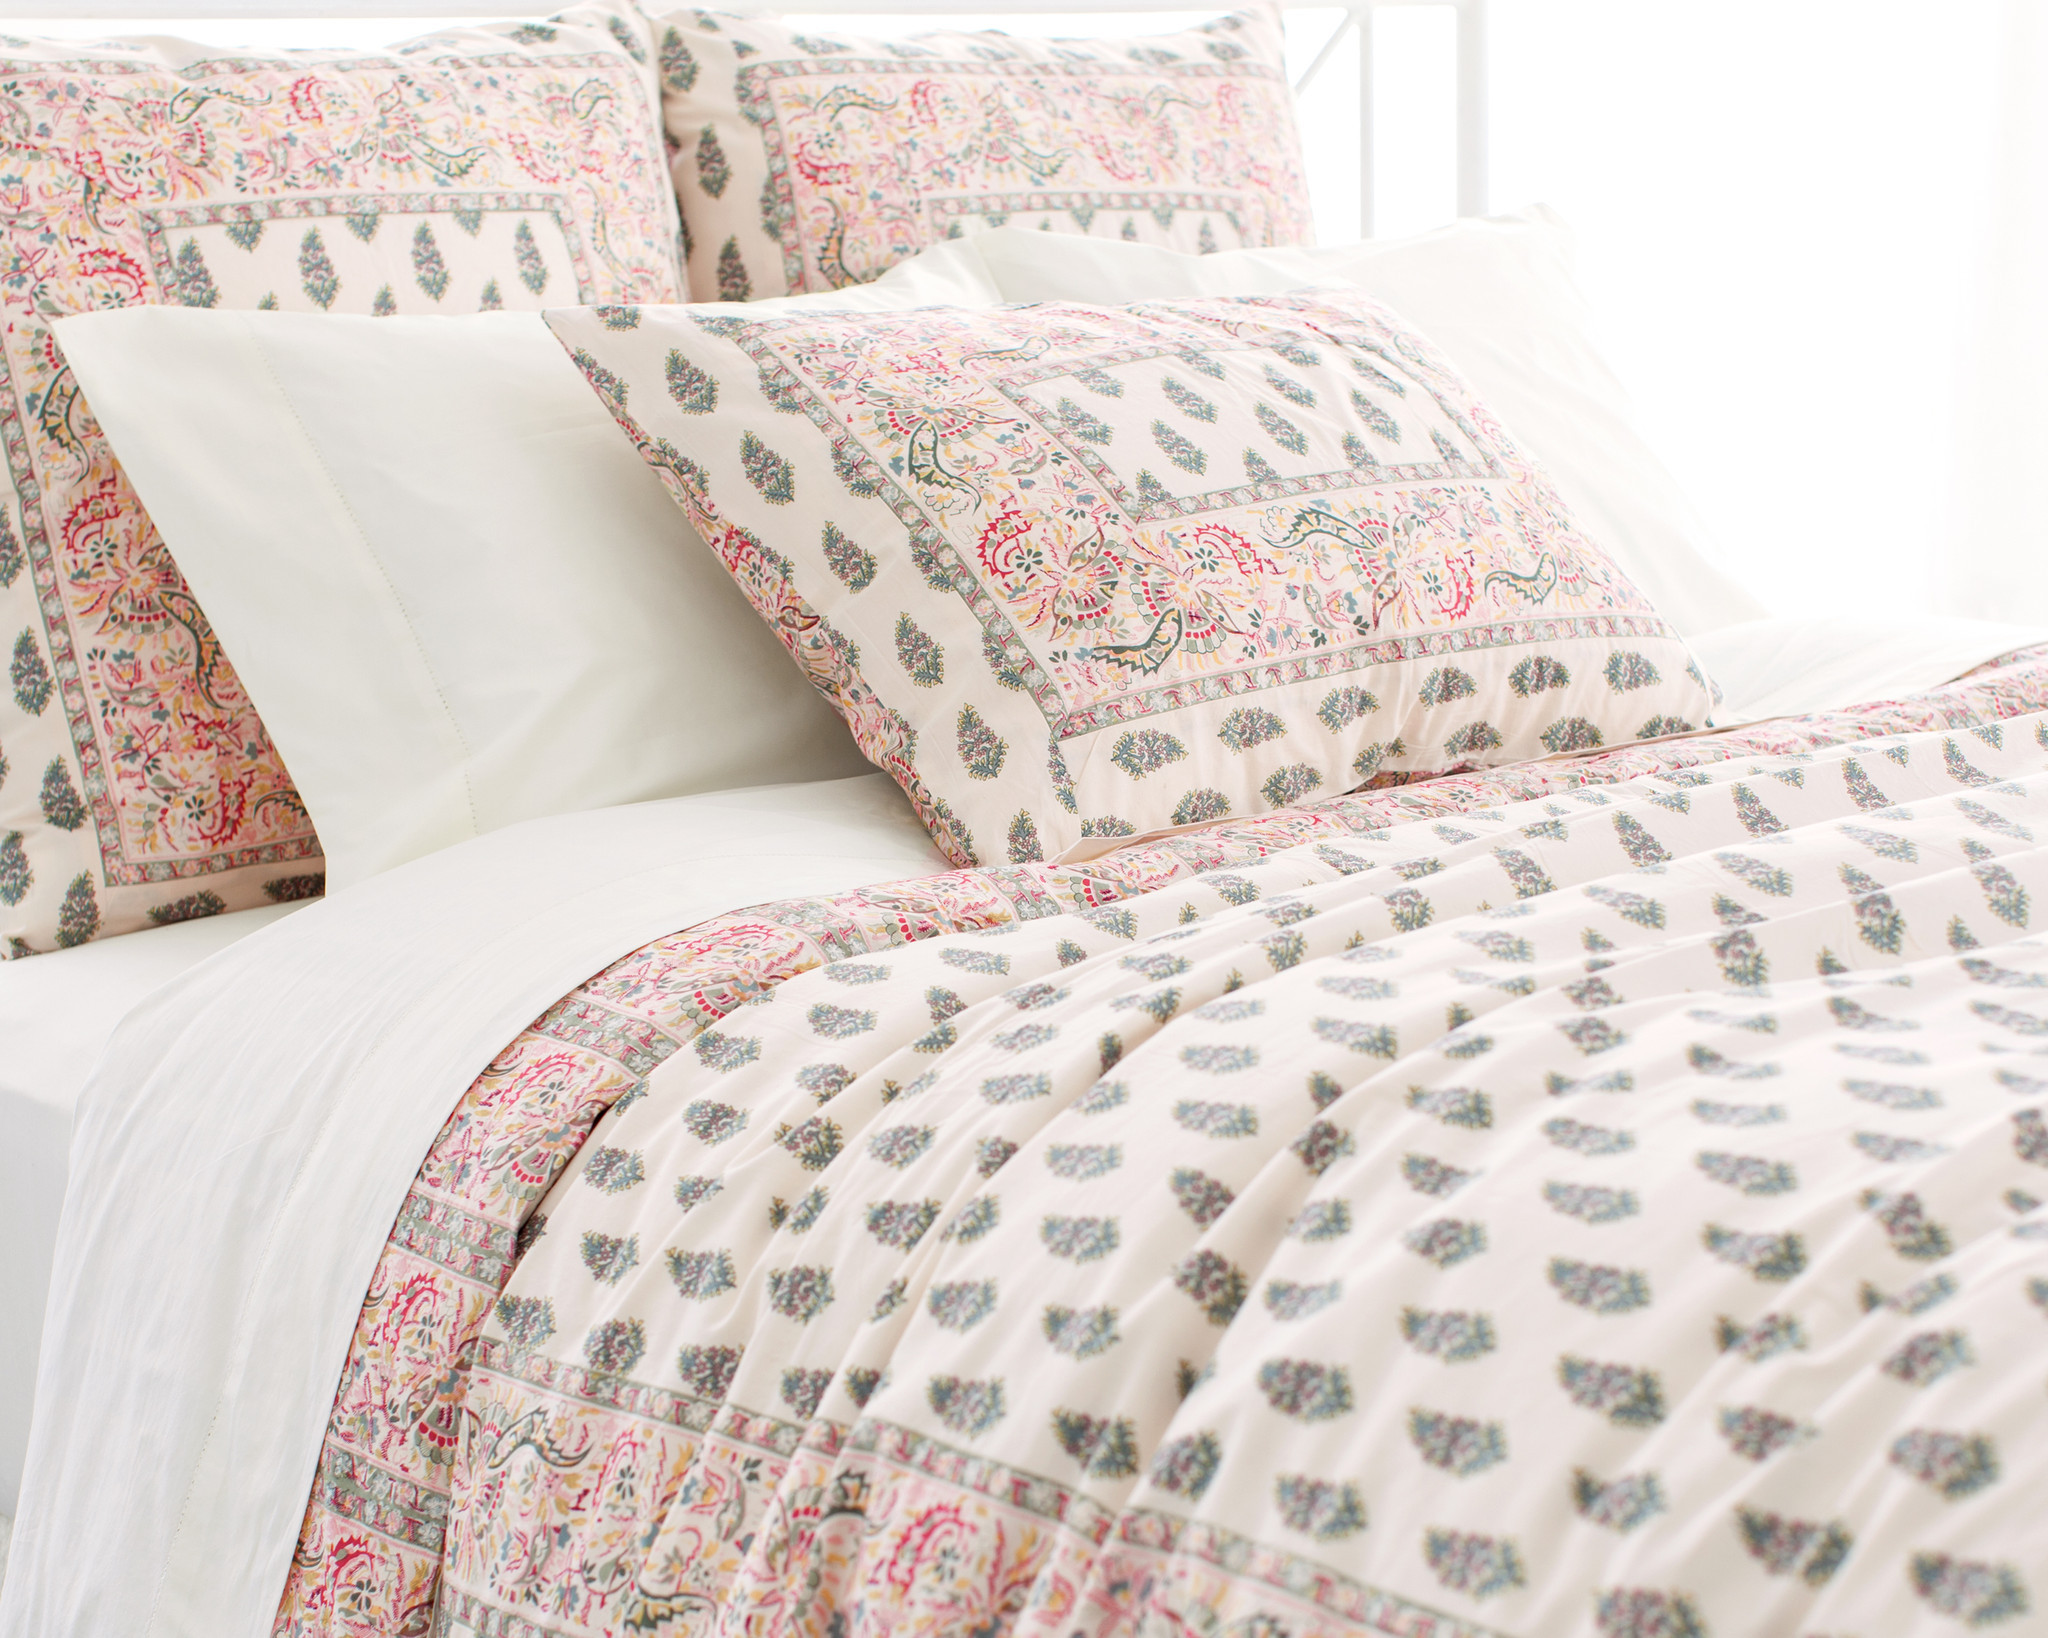 Pine Cone Hill Luxury Bedding Linens in unique pattern for lovely bed ideas